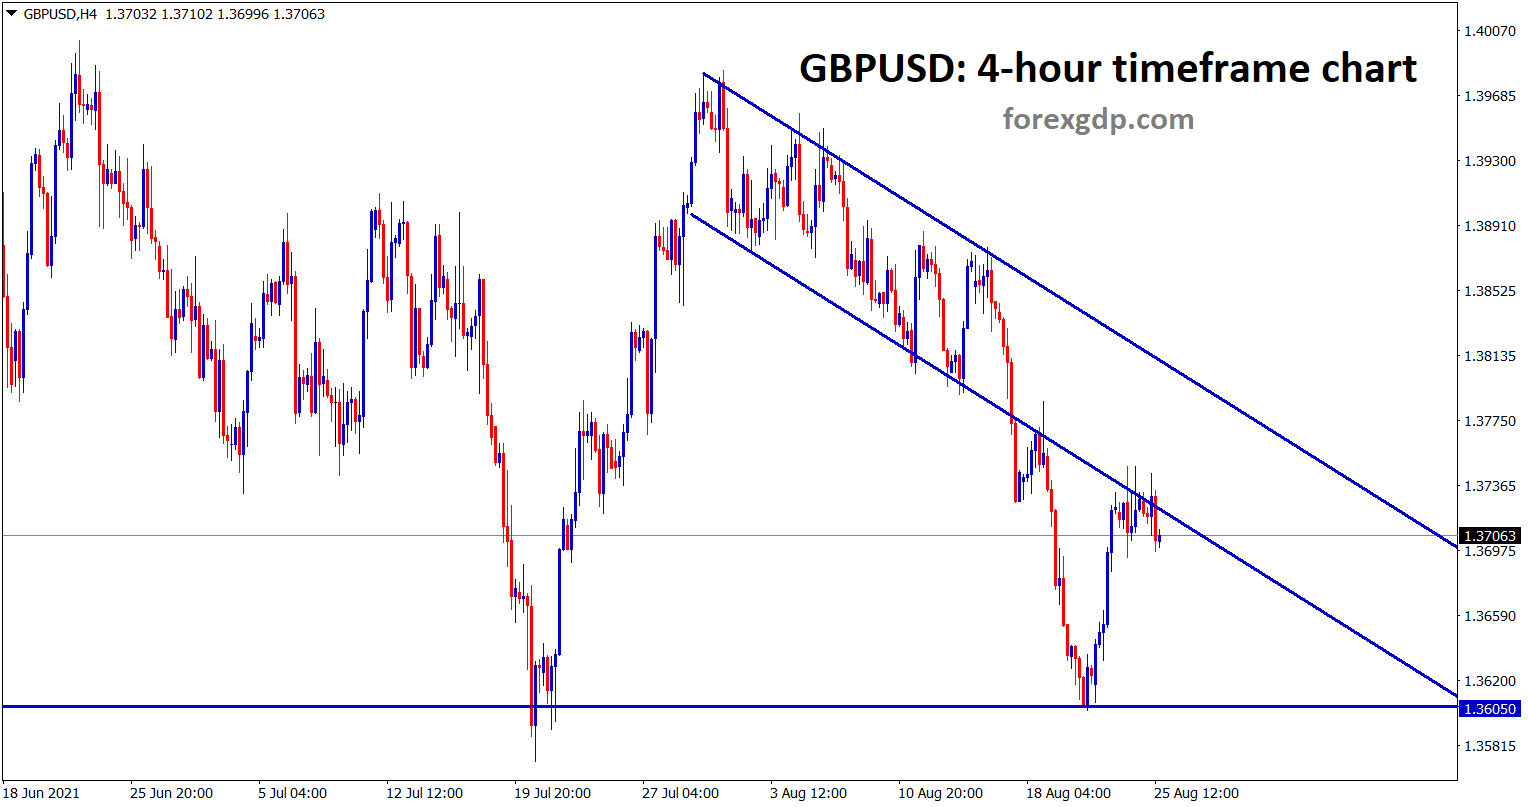 GBPUSD is retesting the broken channel again after rebounding from the support area.